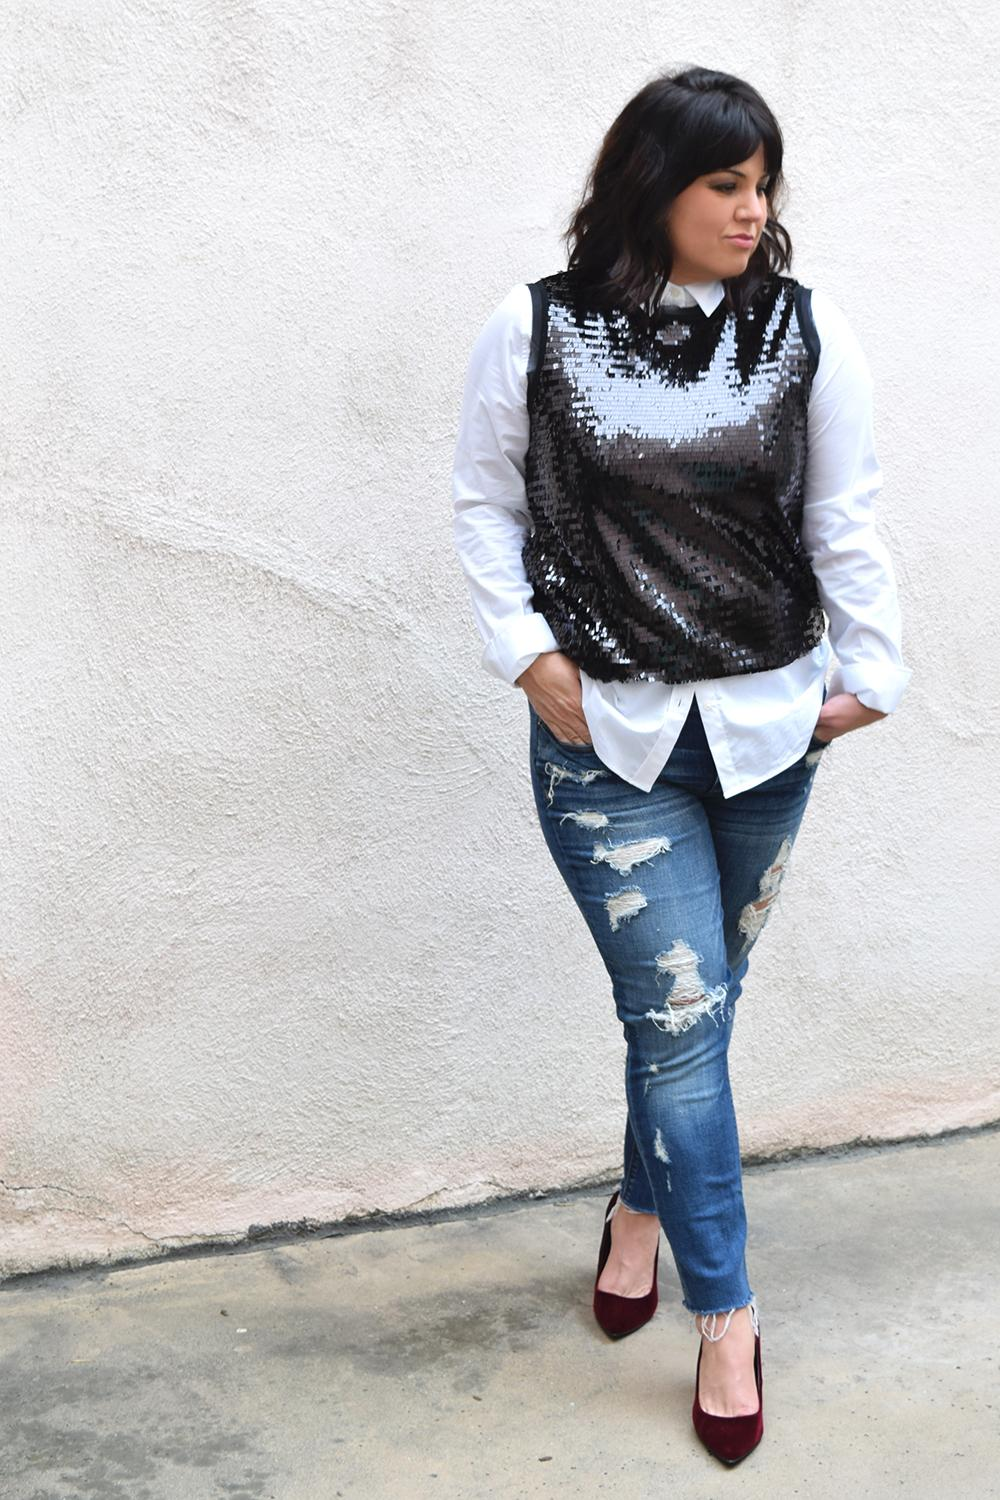 express-mid-rise-distressed-jean-legging-outfitbarefoot-in-la-fashion-blog-style-ideas-0007